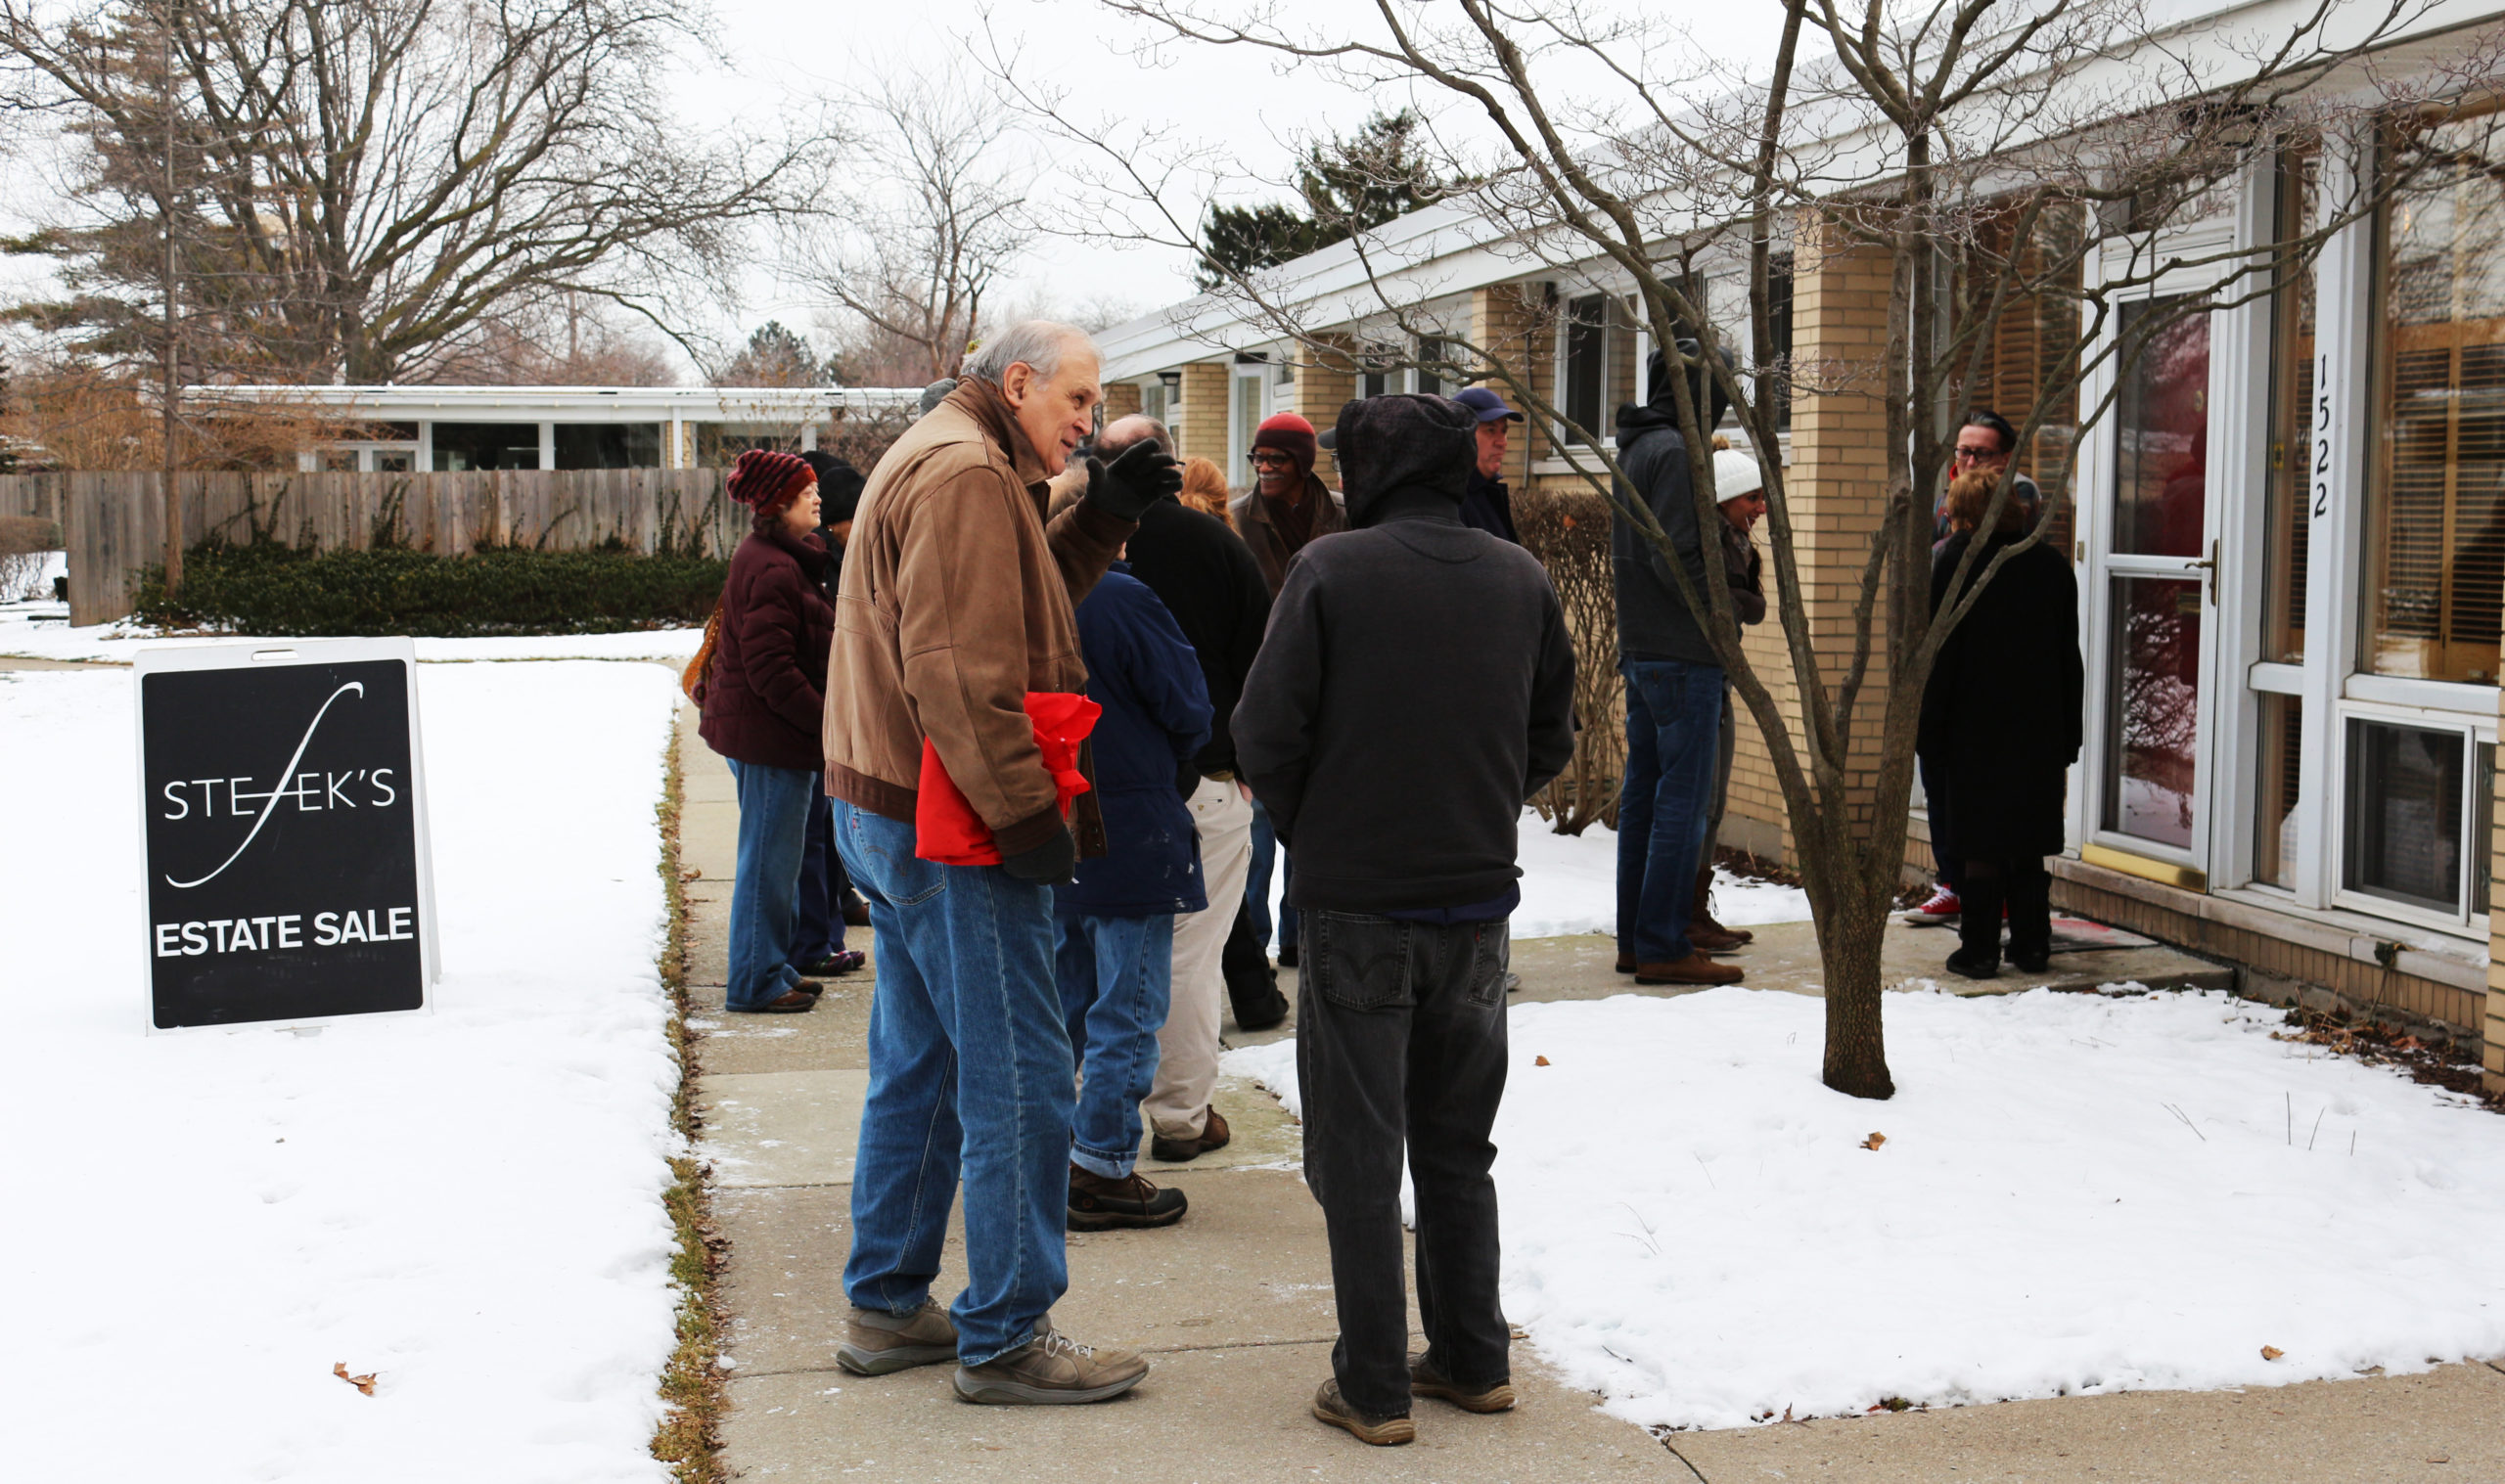 Group of customers lined up outside of a Stefek's Estate Sale